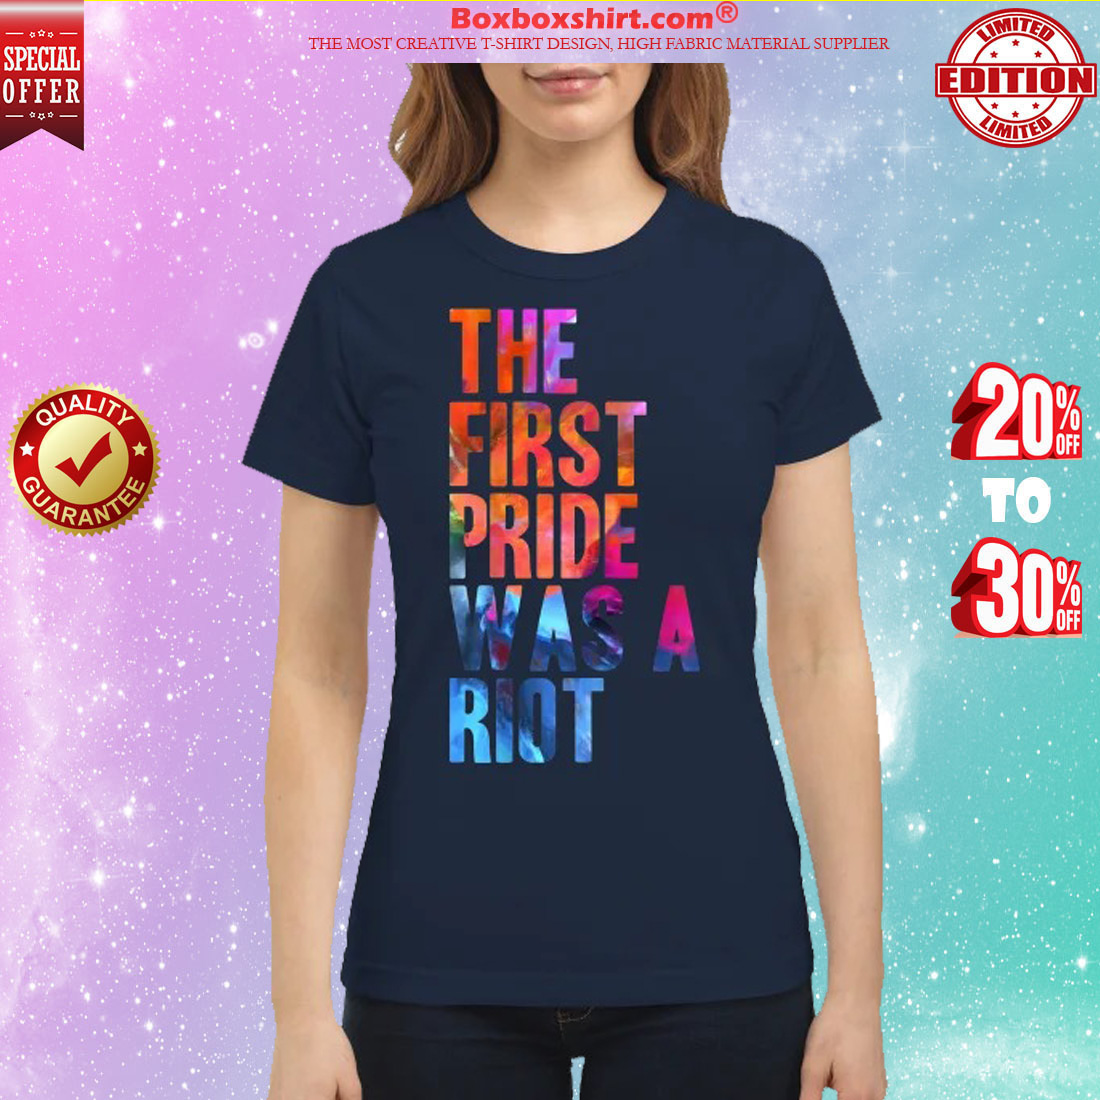 The first pride was a Riot classic shirt